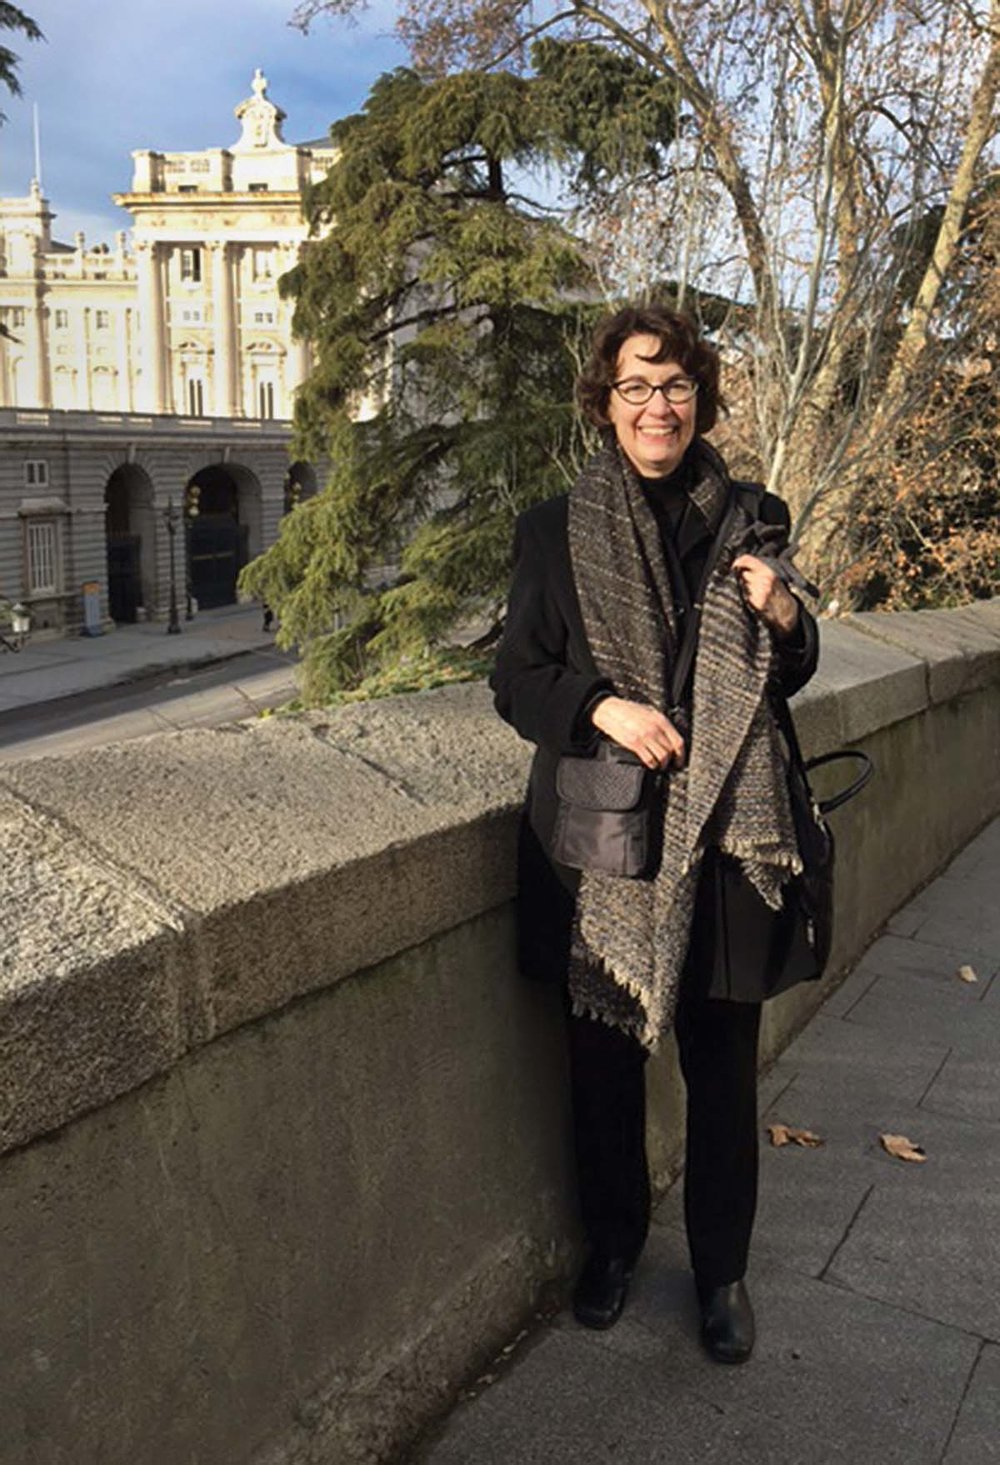 Dr. Margaret Lucia at The Palacio Real during her Fulbright in Madrid, Spain.